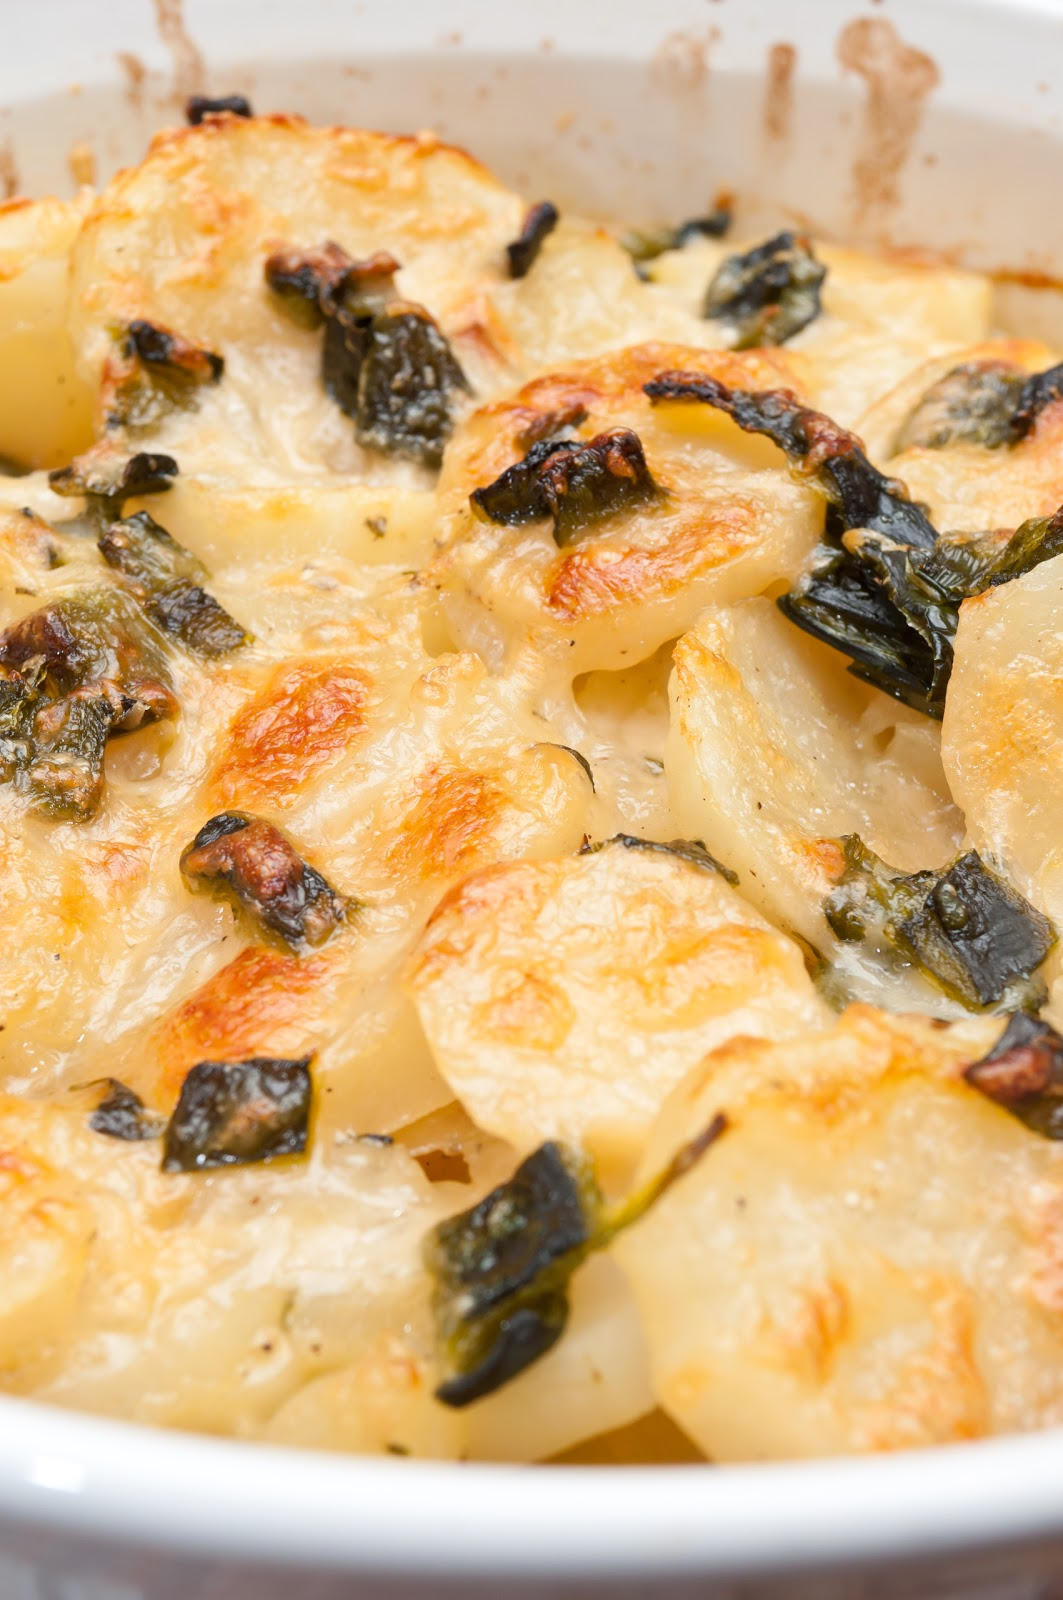 Hedlund home cooking light scalloped potatoes with roasted chiles of the food network magazine it was from a section titled hot potatoes the magazine had four different scalloped potato recipes forumfinder Choice Image